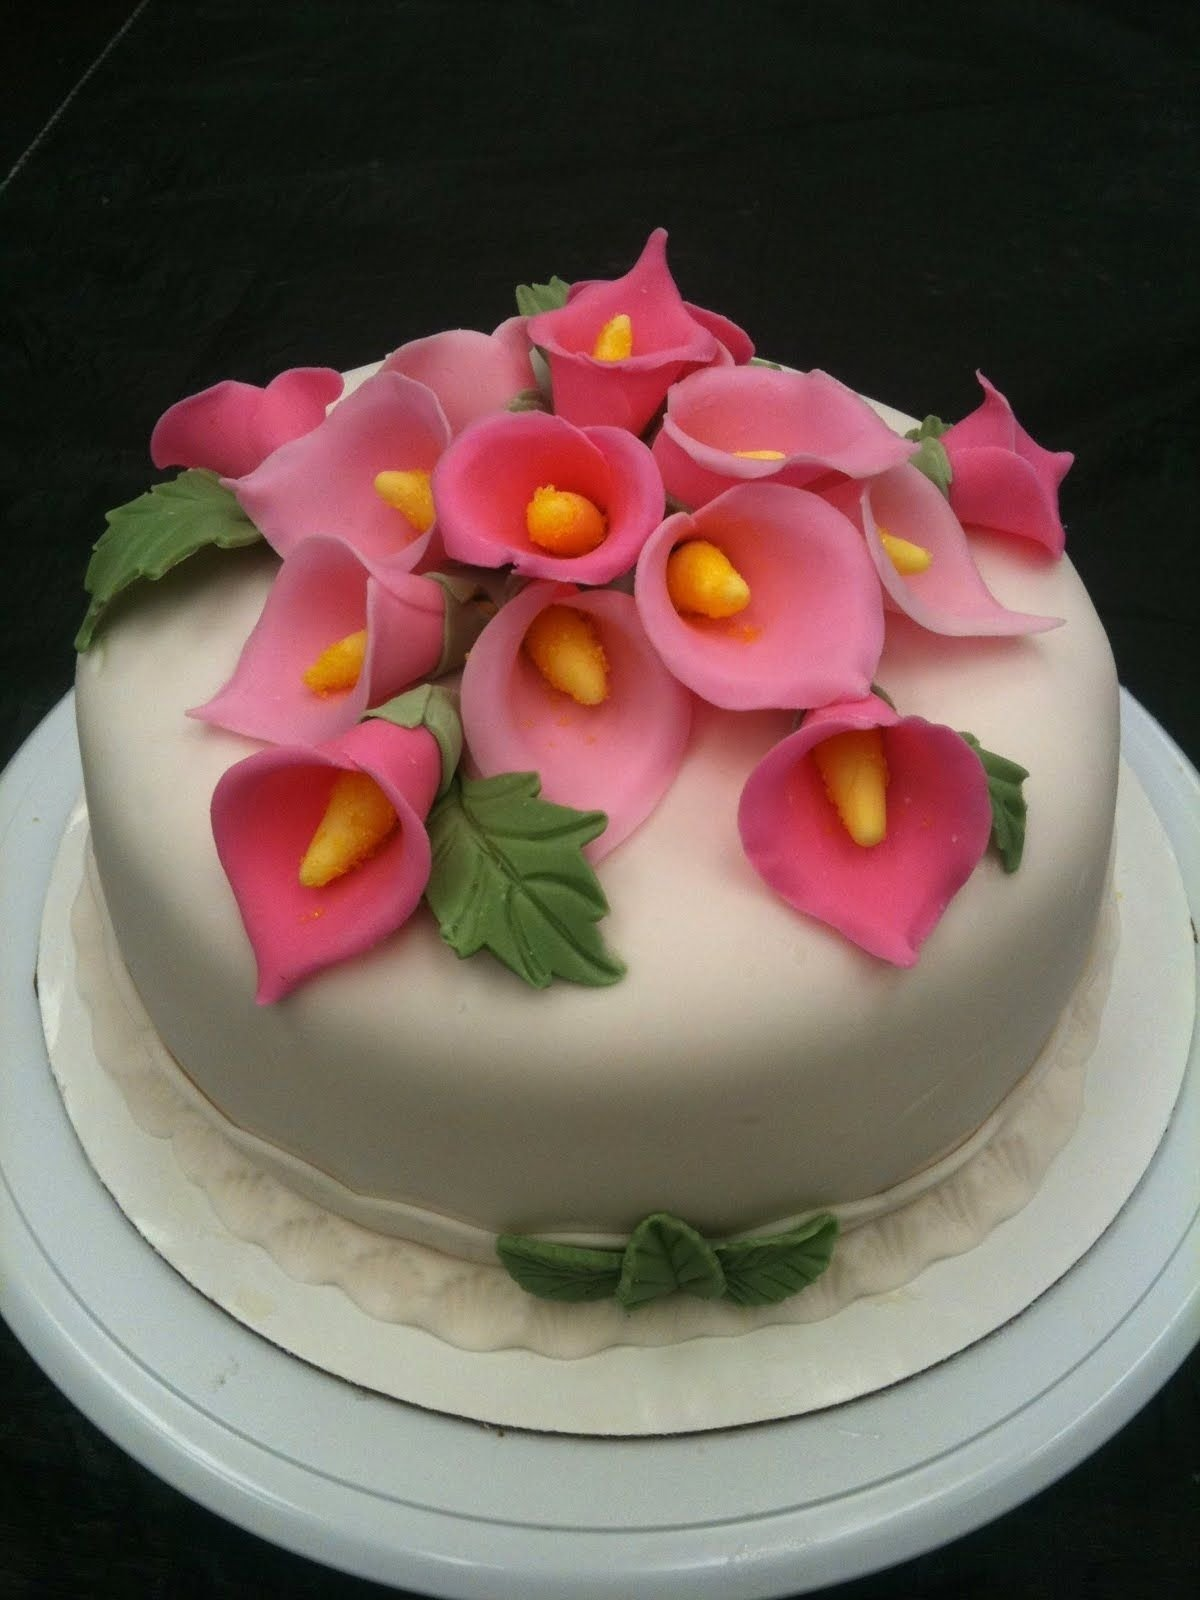 10 Famous Fondant Cake Ideas For Beginners wilton decorating ideas with fondant and gumpaste share to